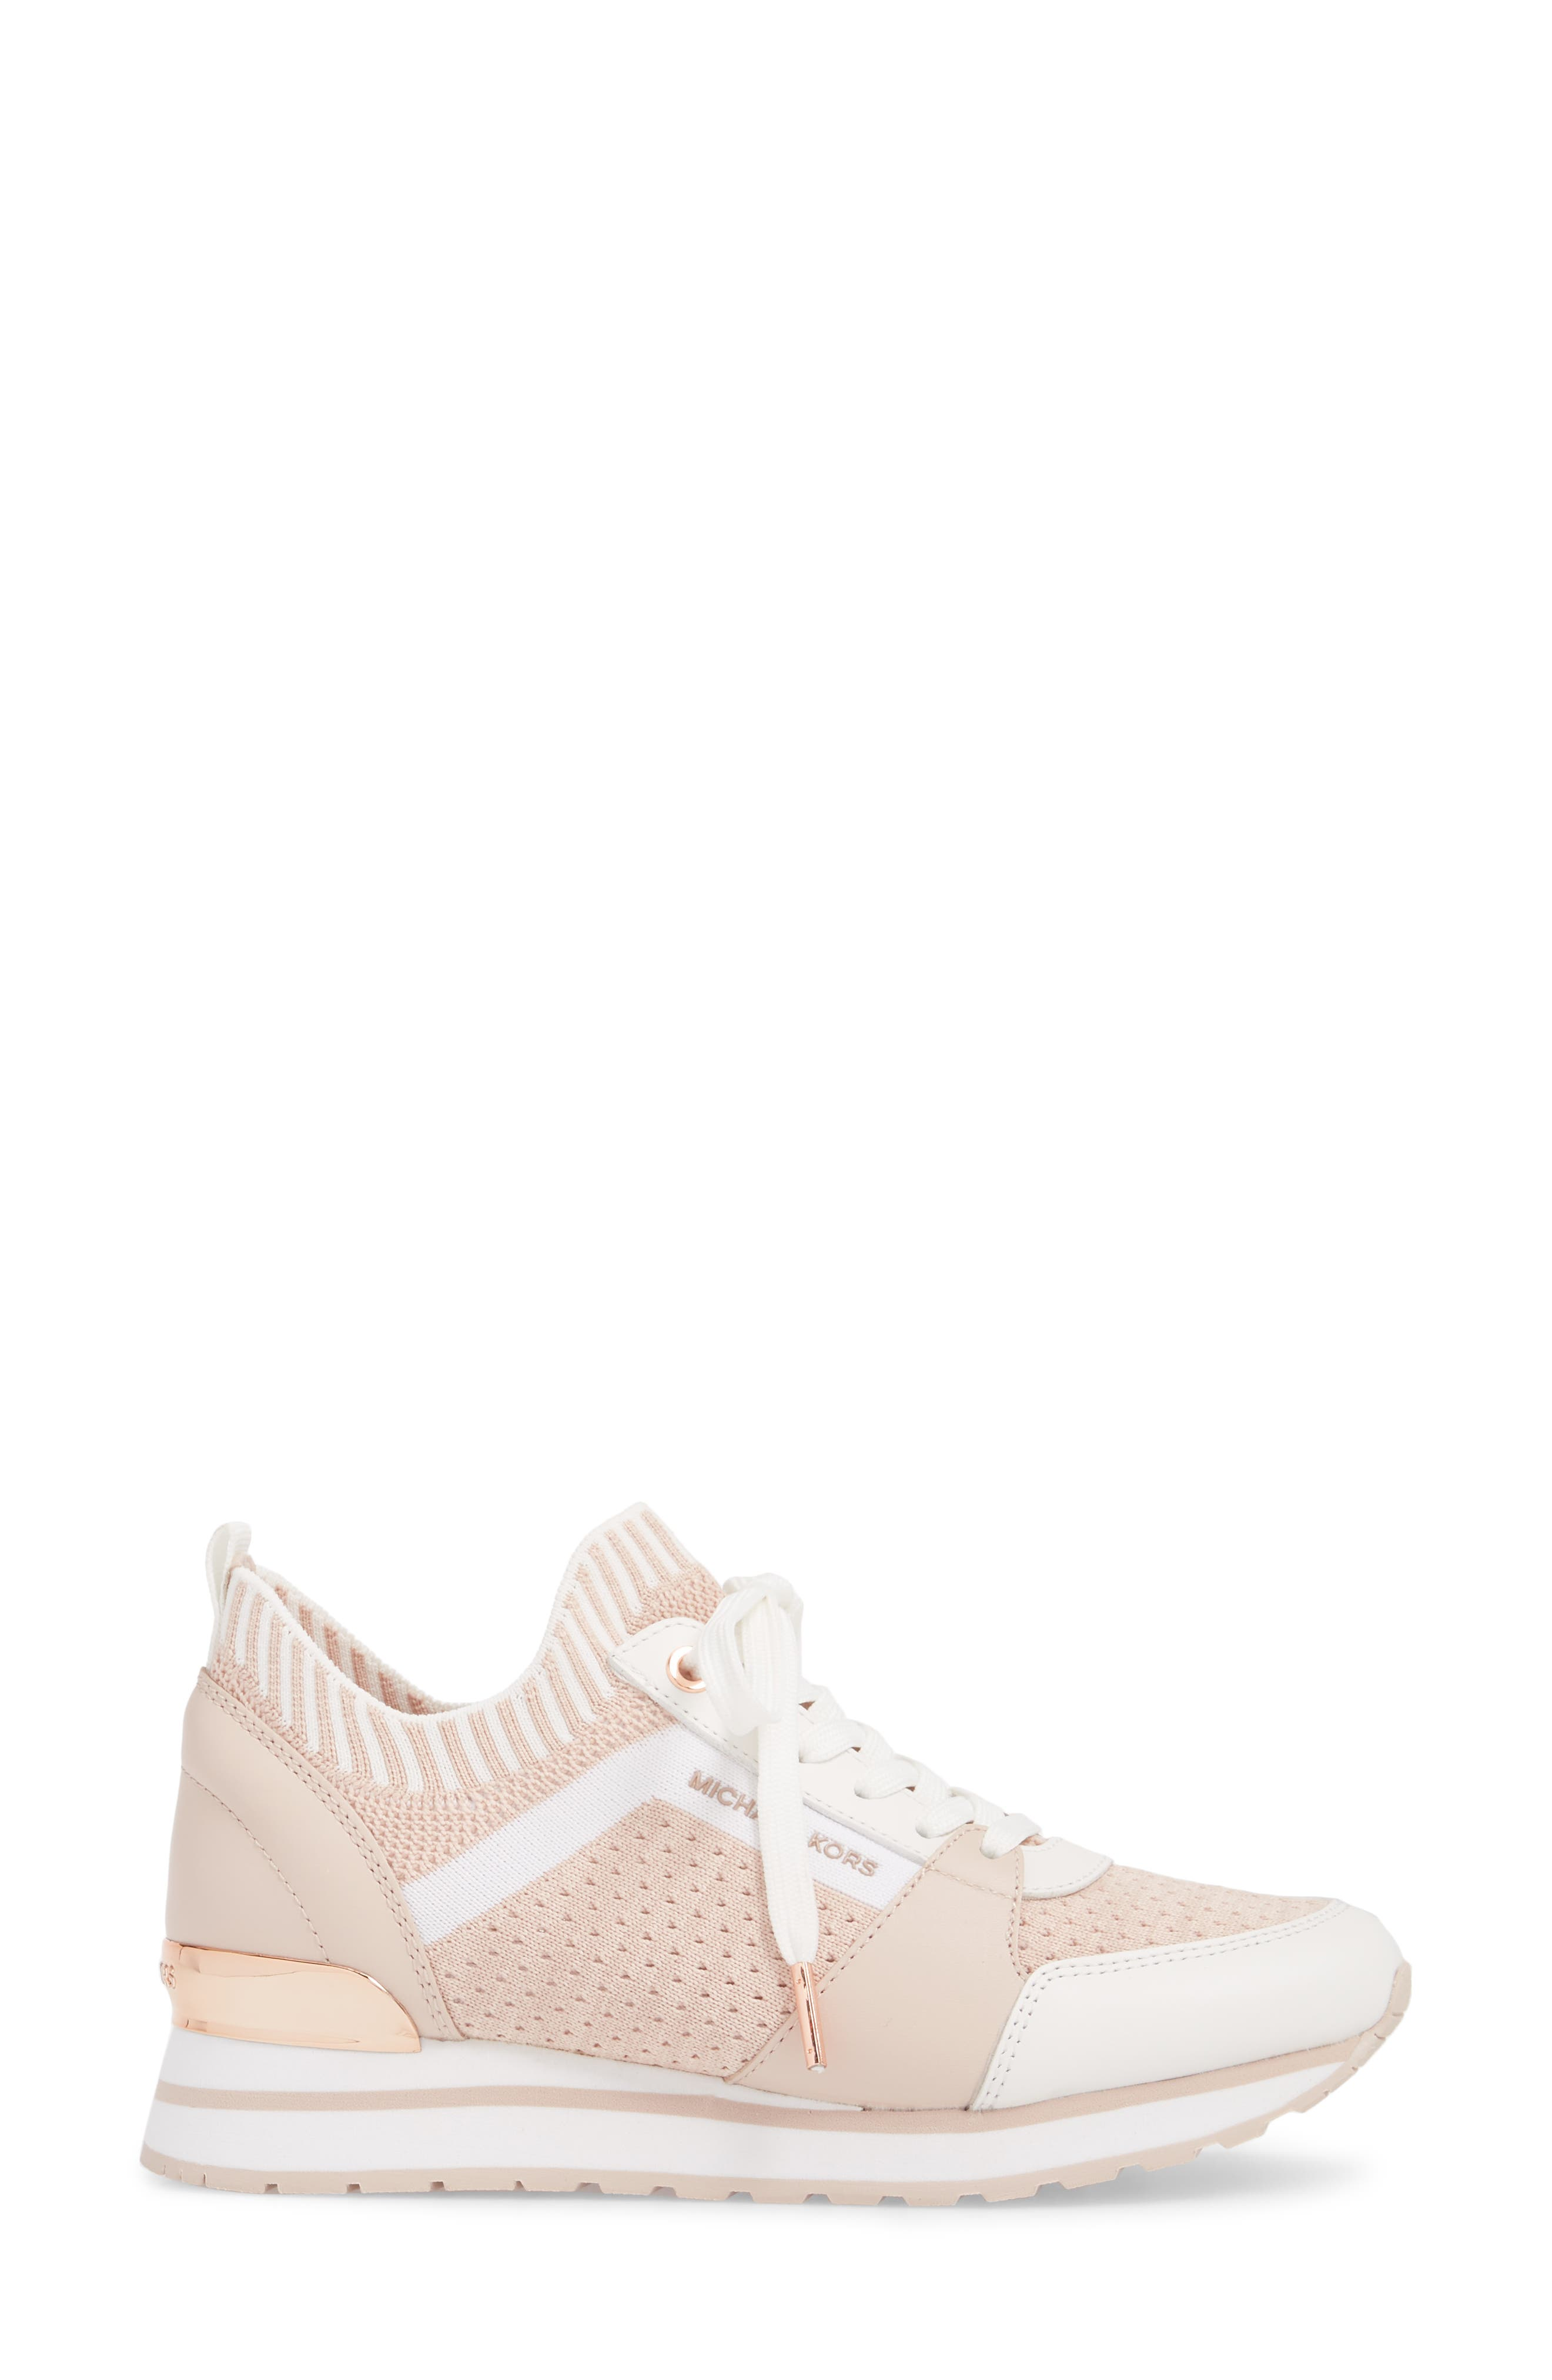 Billie Perforated Sneaker,                             Alternate thumbnail 3, color,                             Soft Pink Fabric